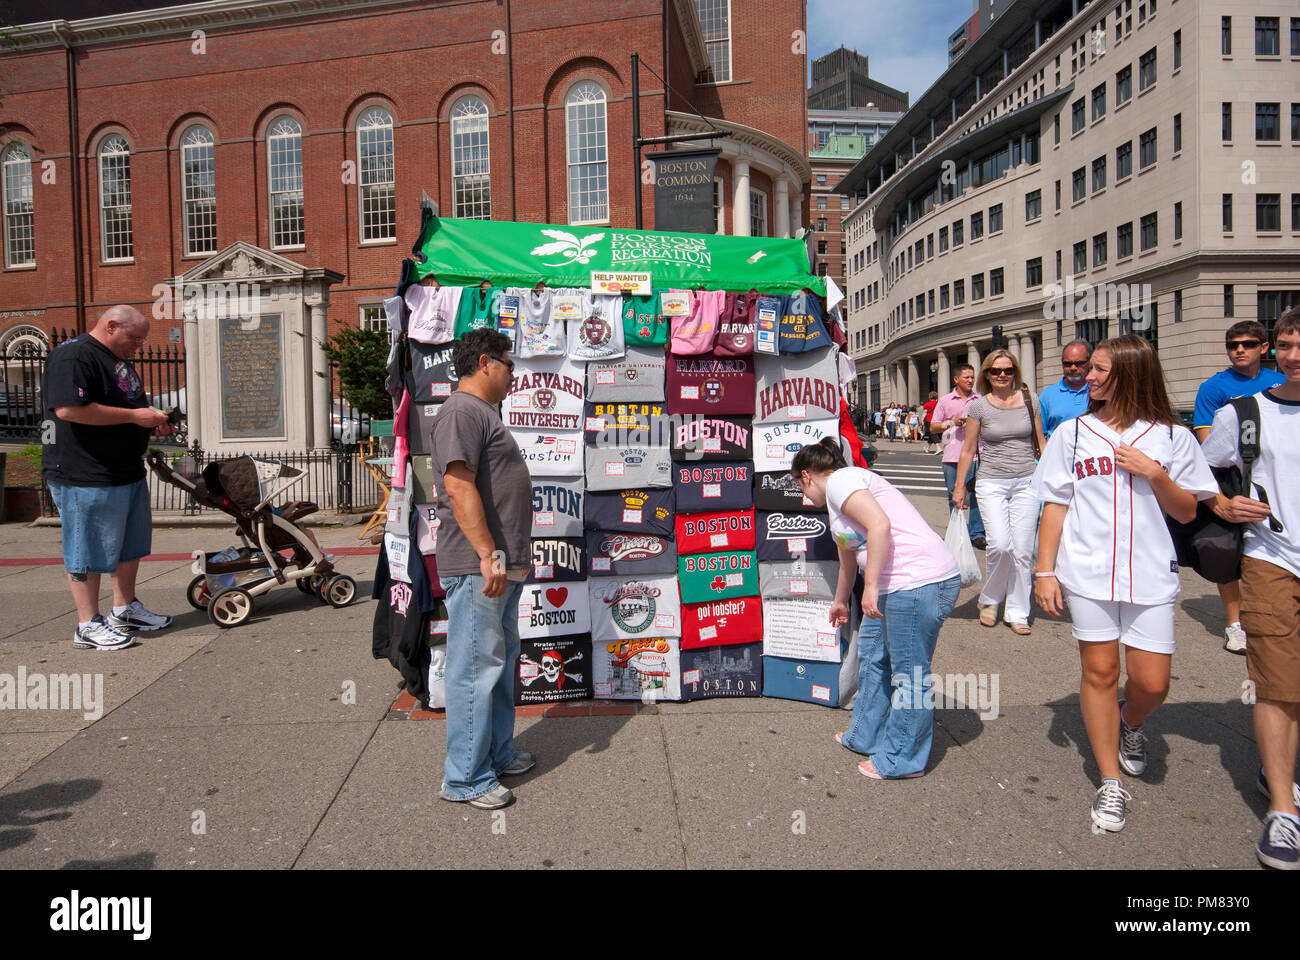 Kiosk selling t-shirts at Boston Common, on the corner between Park St. and Tremont St., Boston, Suffolk County, Massachusetts, USA - Stock Image